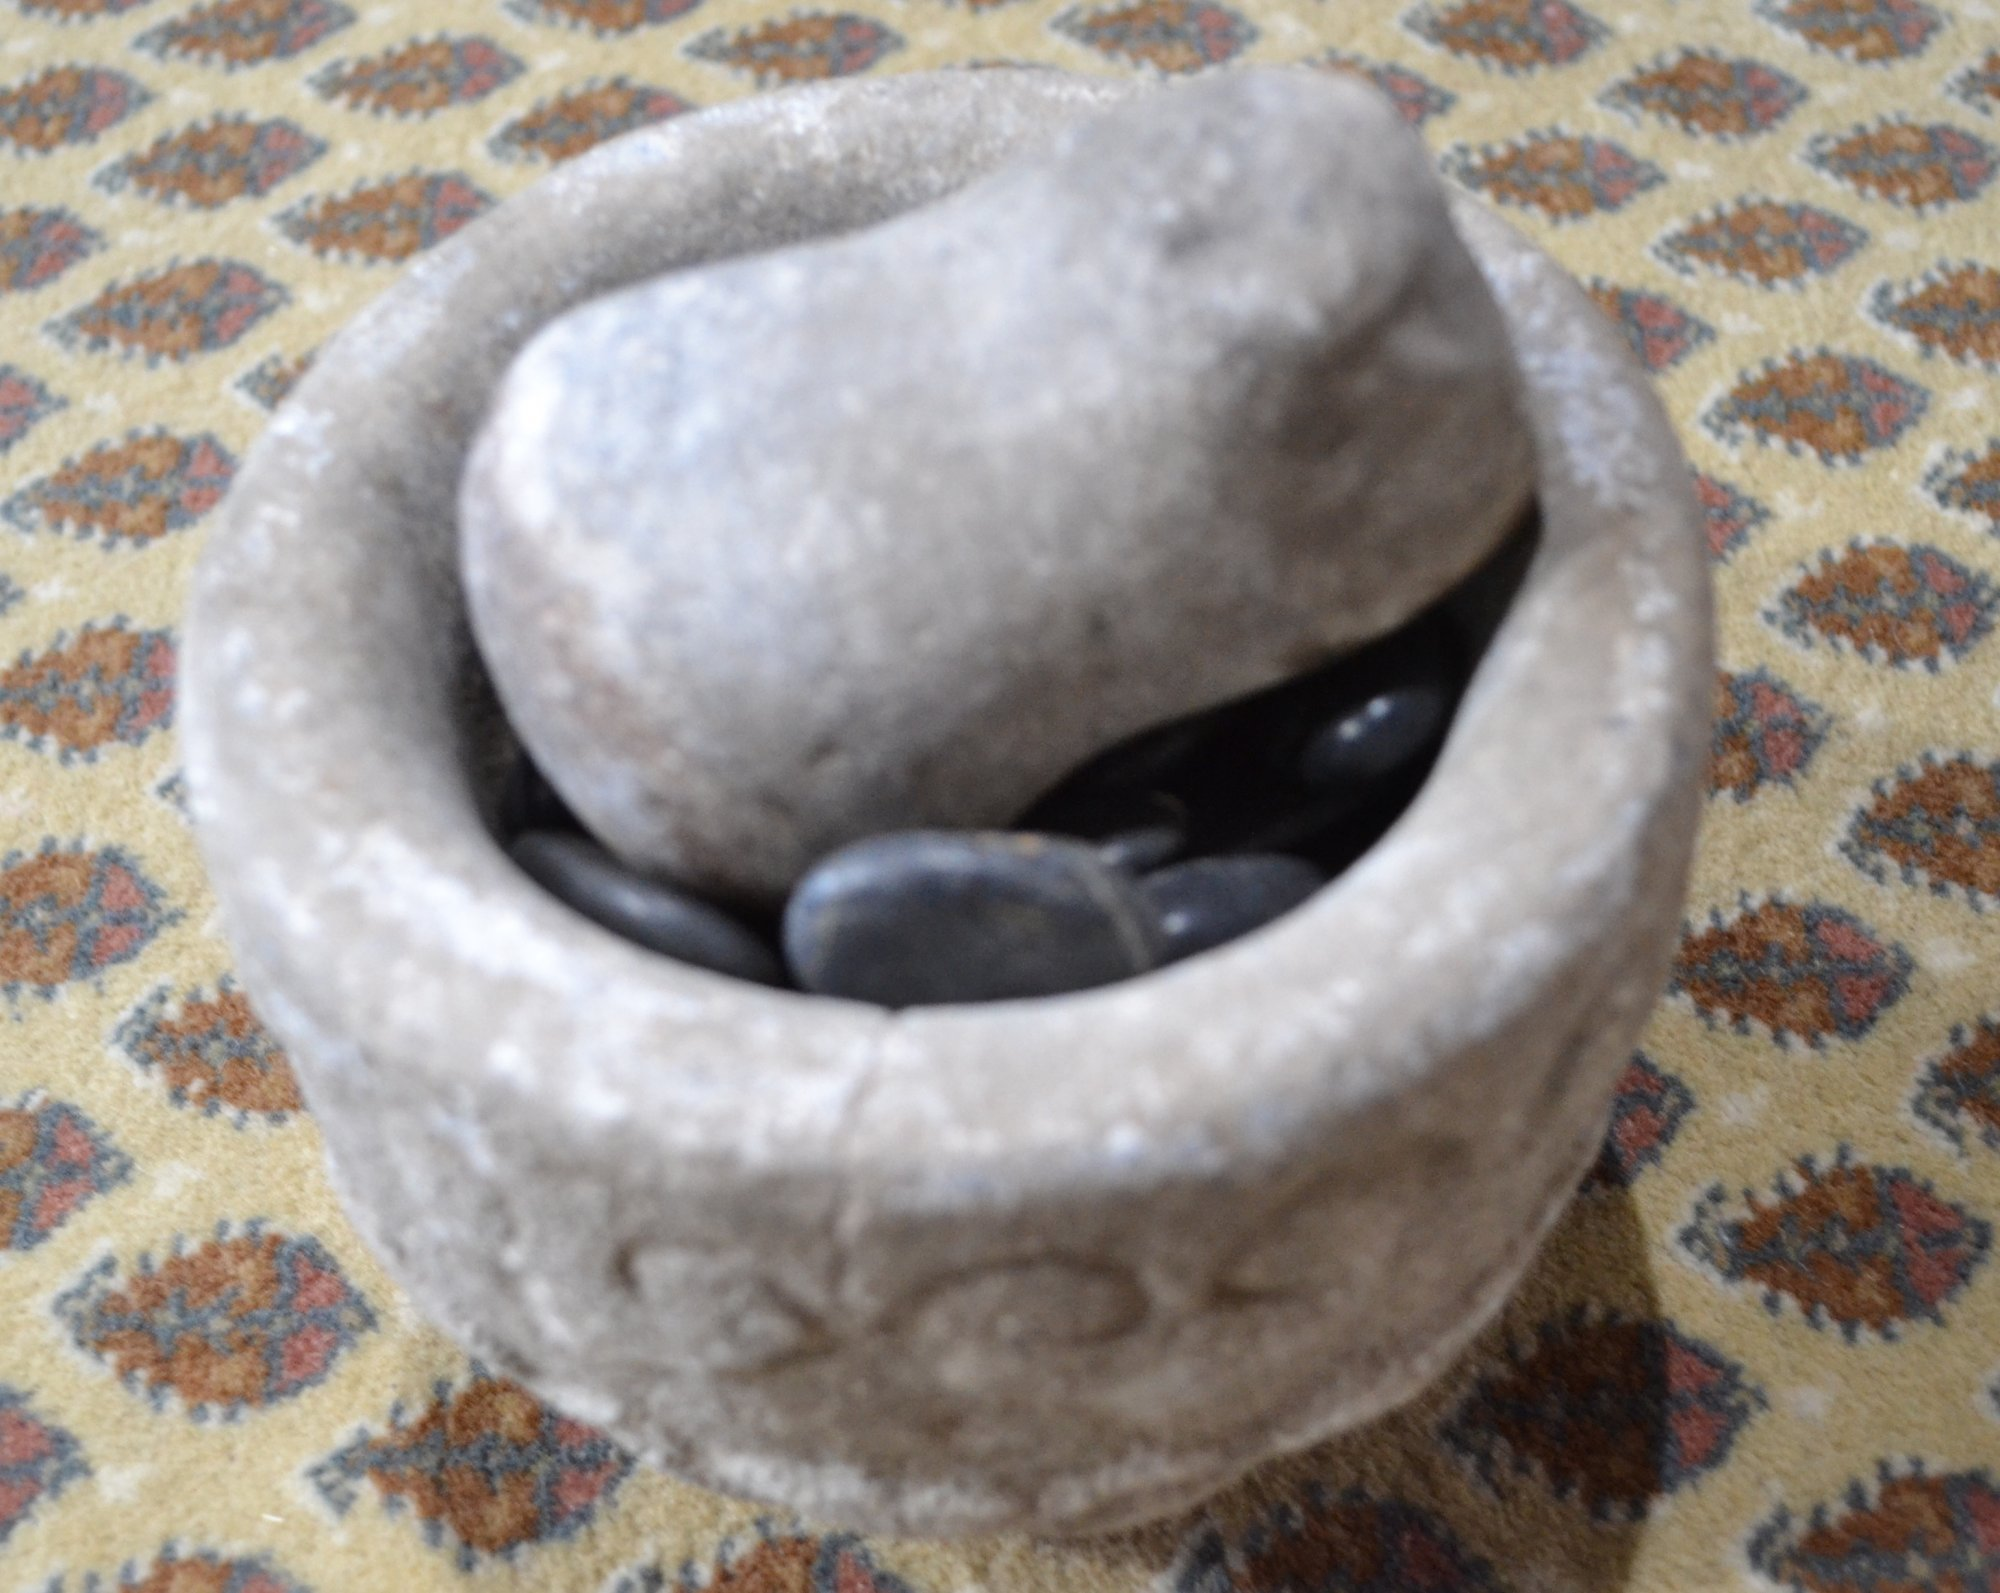 South American stone mortar and pestle